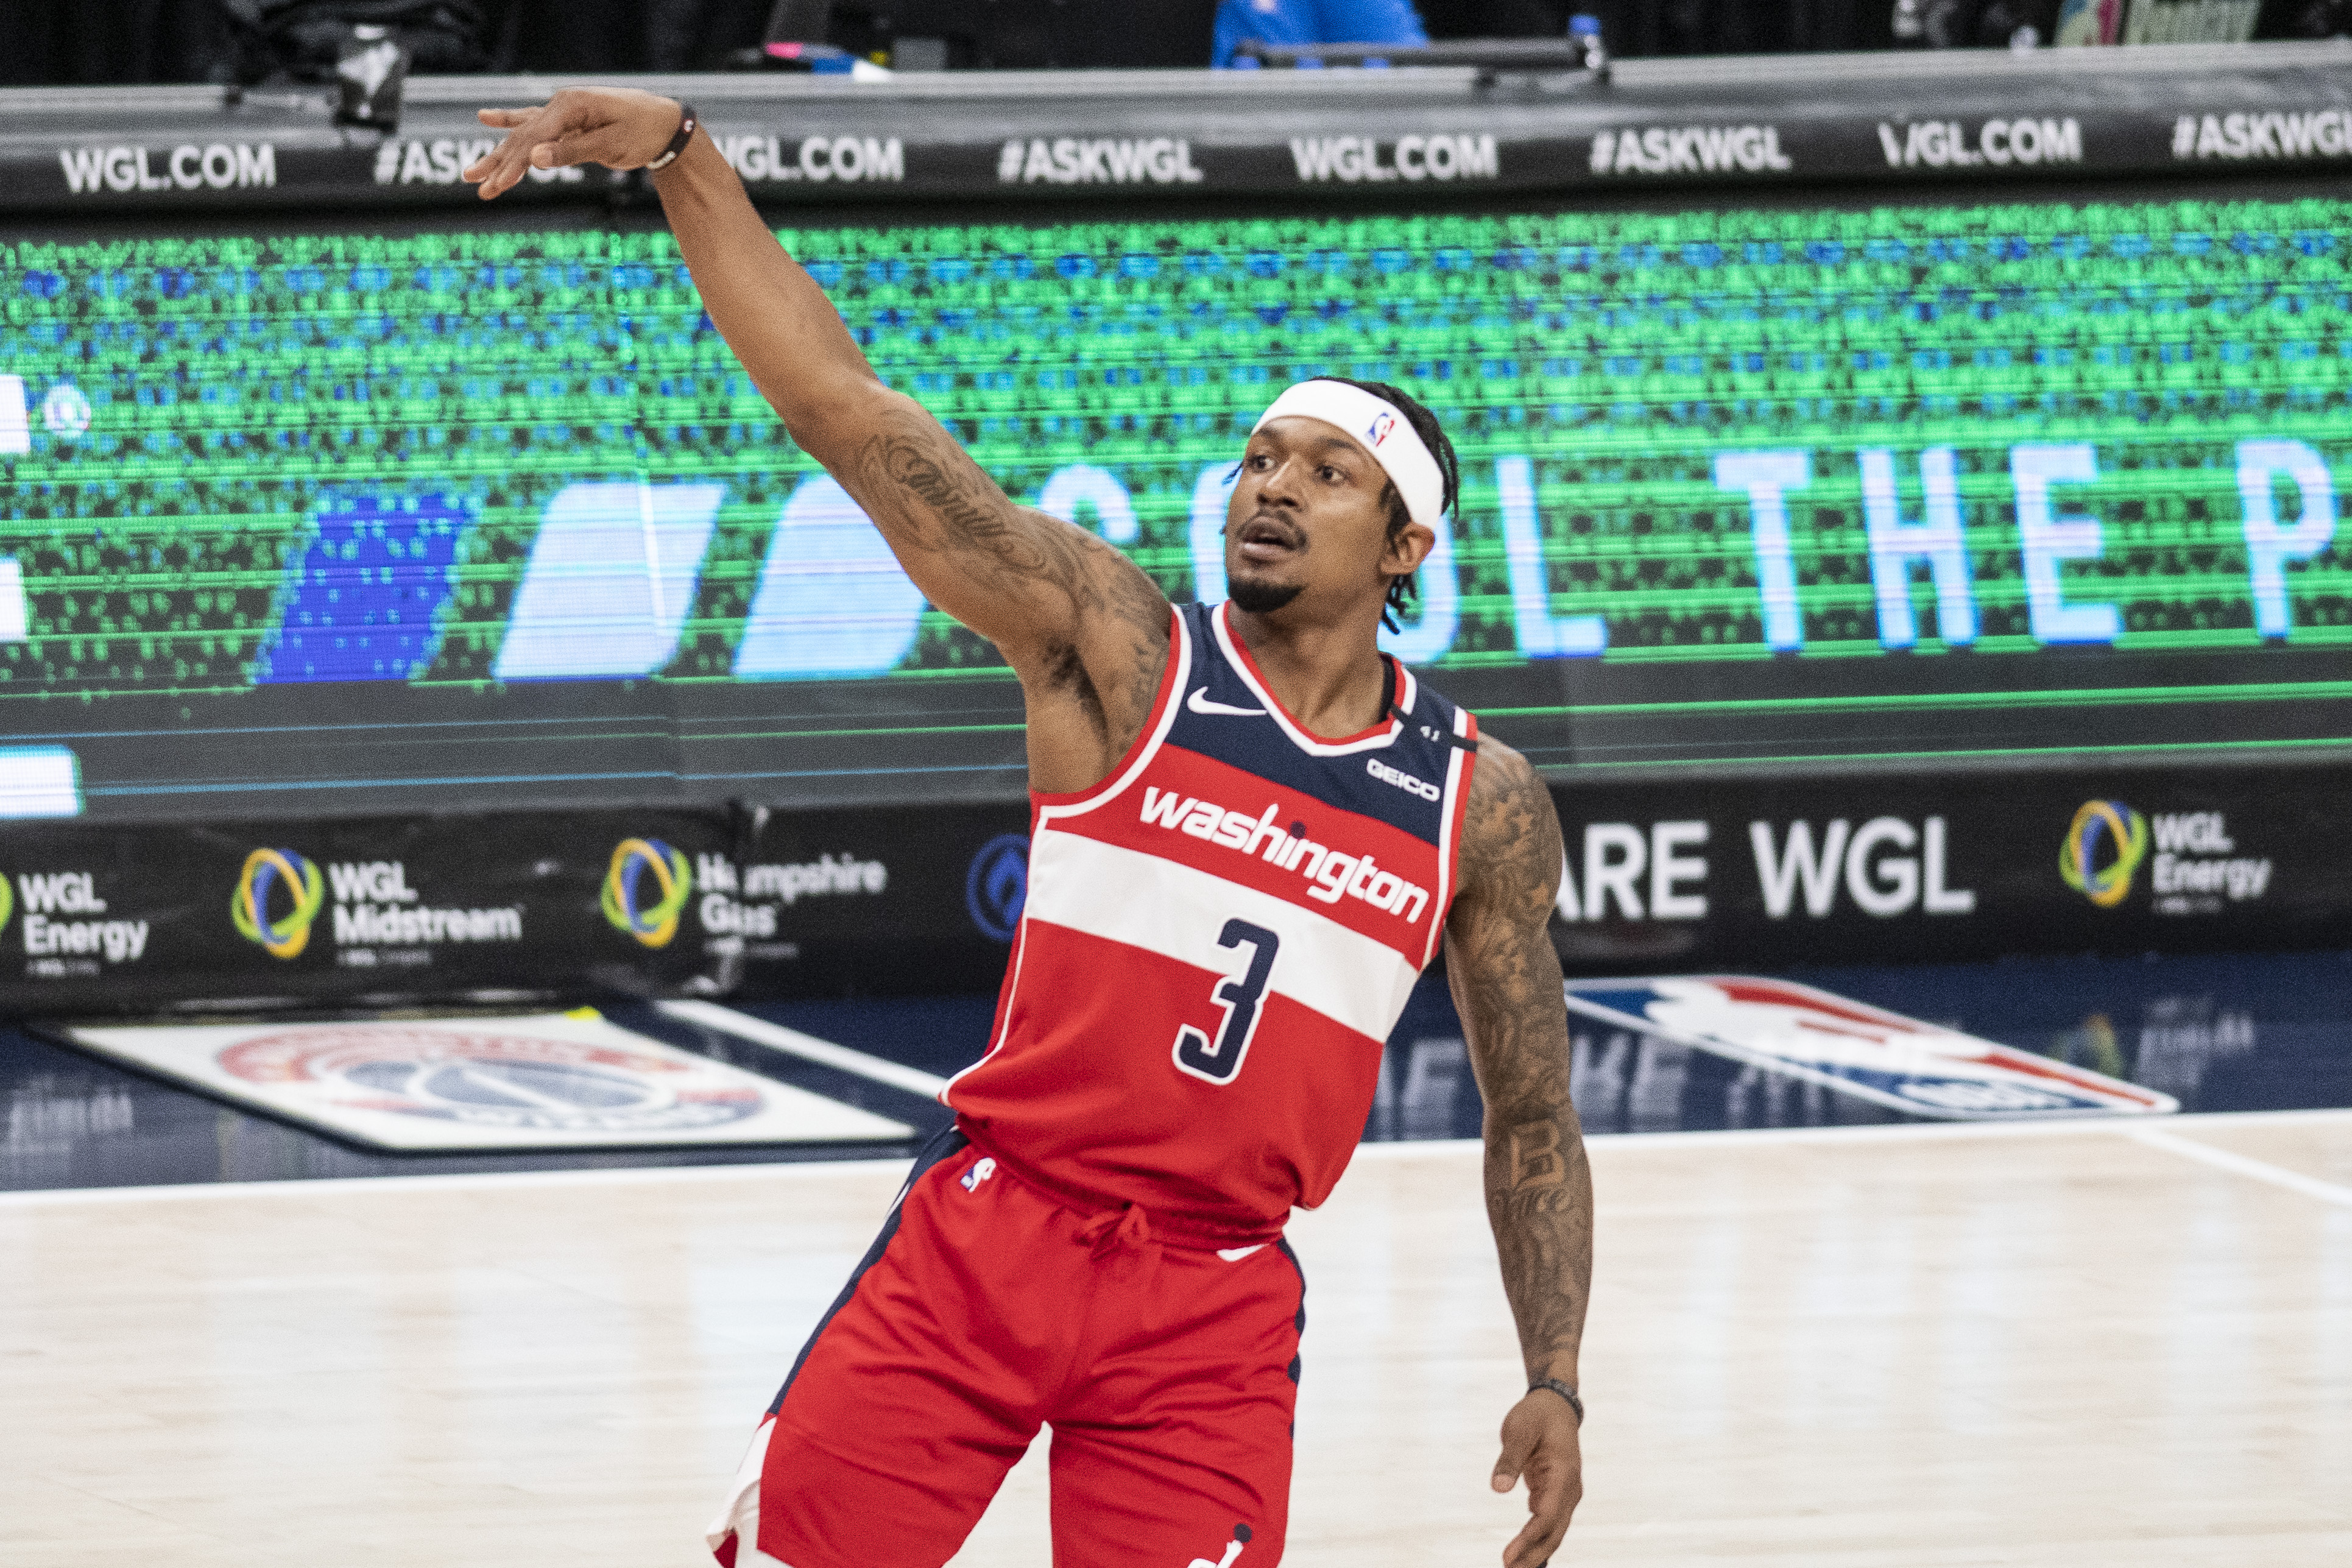 Mar 27, 2021; Washington, District of Columbia, USA; Washington Wizards guard Bradley Beal (3) follows throw on a shot during the first half against the Detroit Pistons at Capital One Arena.